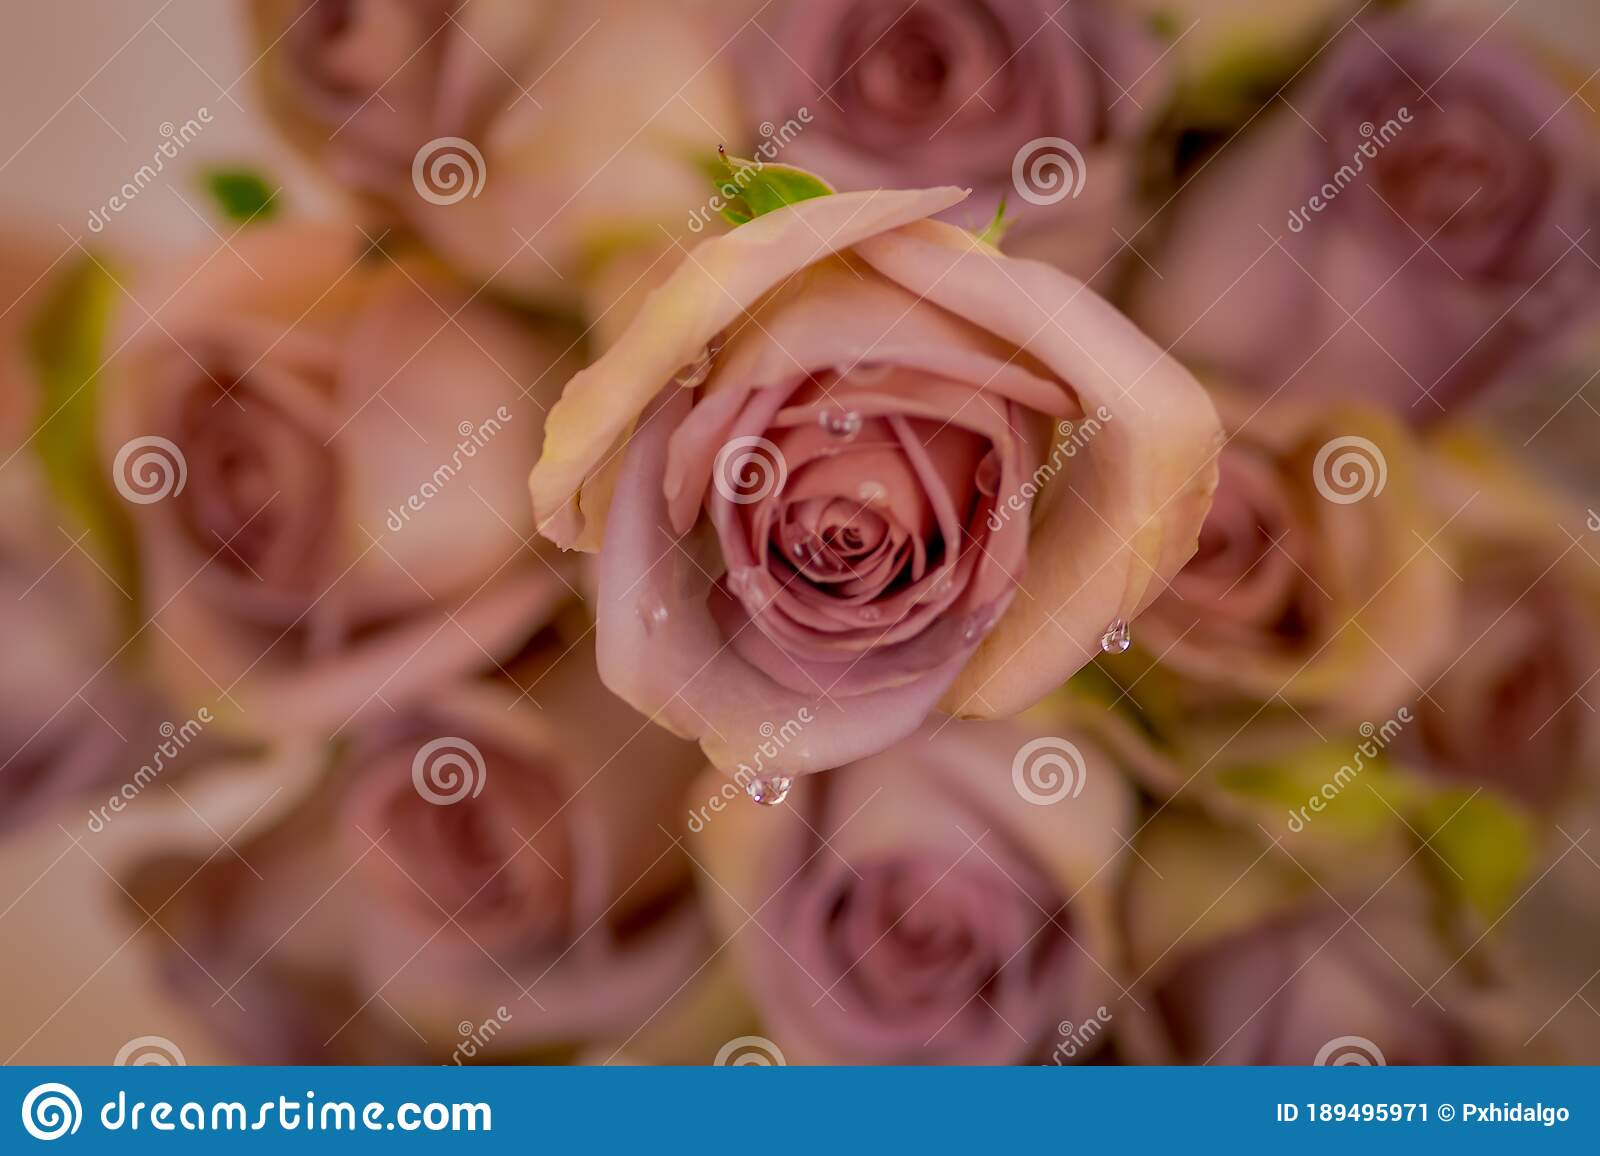 Close Up Of A Bouquet Of Amnesia Roses Variety Studio Shot Pink Flowers Stock Image Image Of Background Rose 189495971